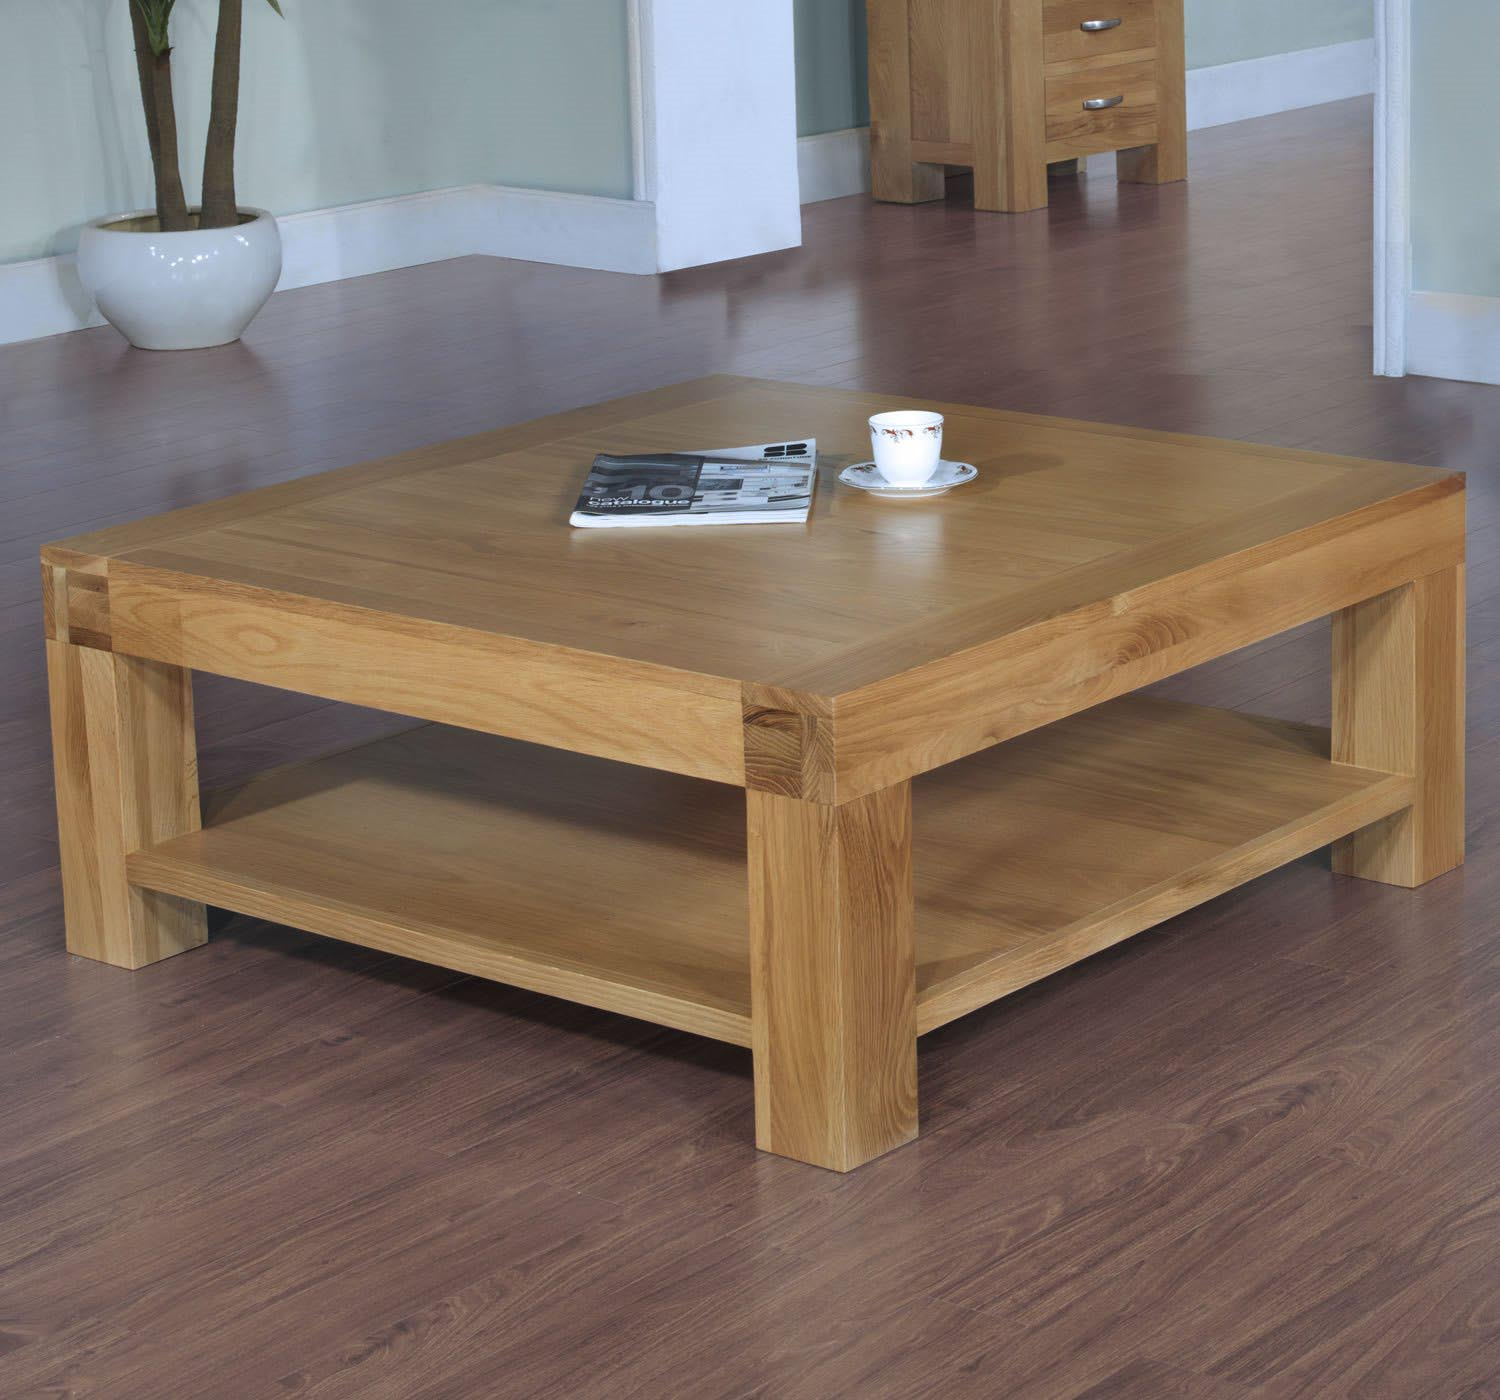 Coffee Table Designs ~ Pine square coffee table design ideas